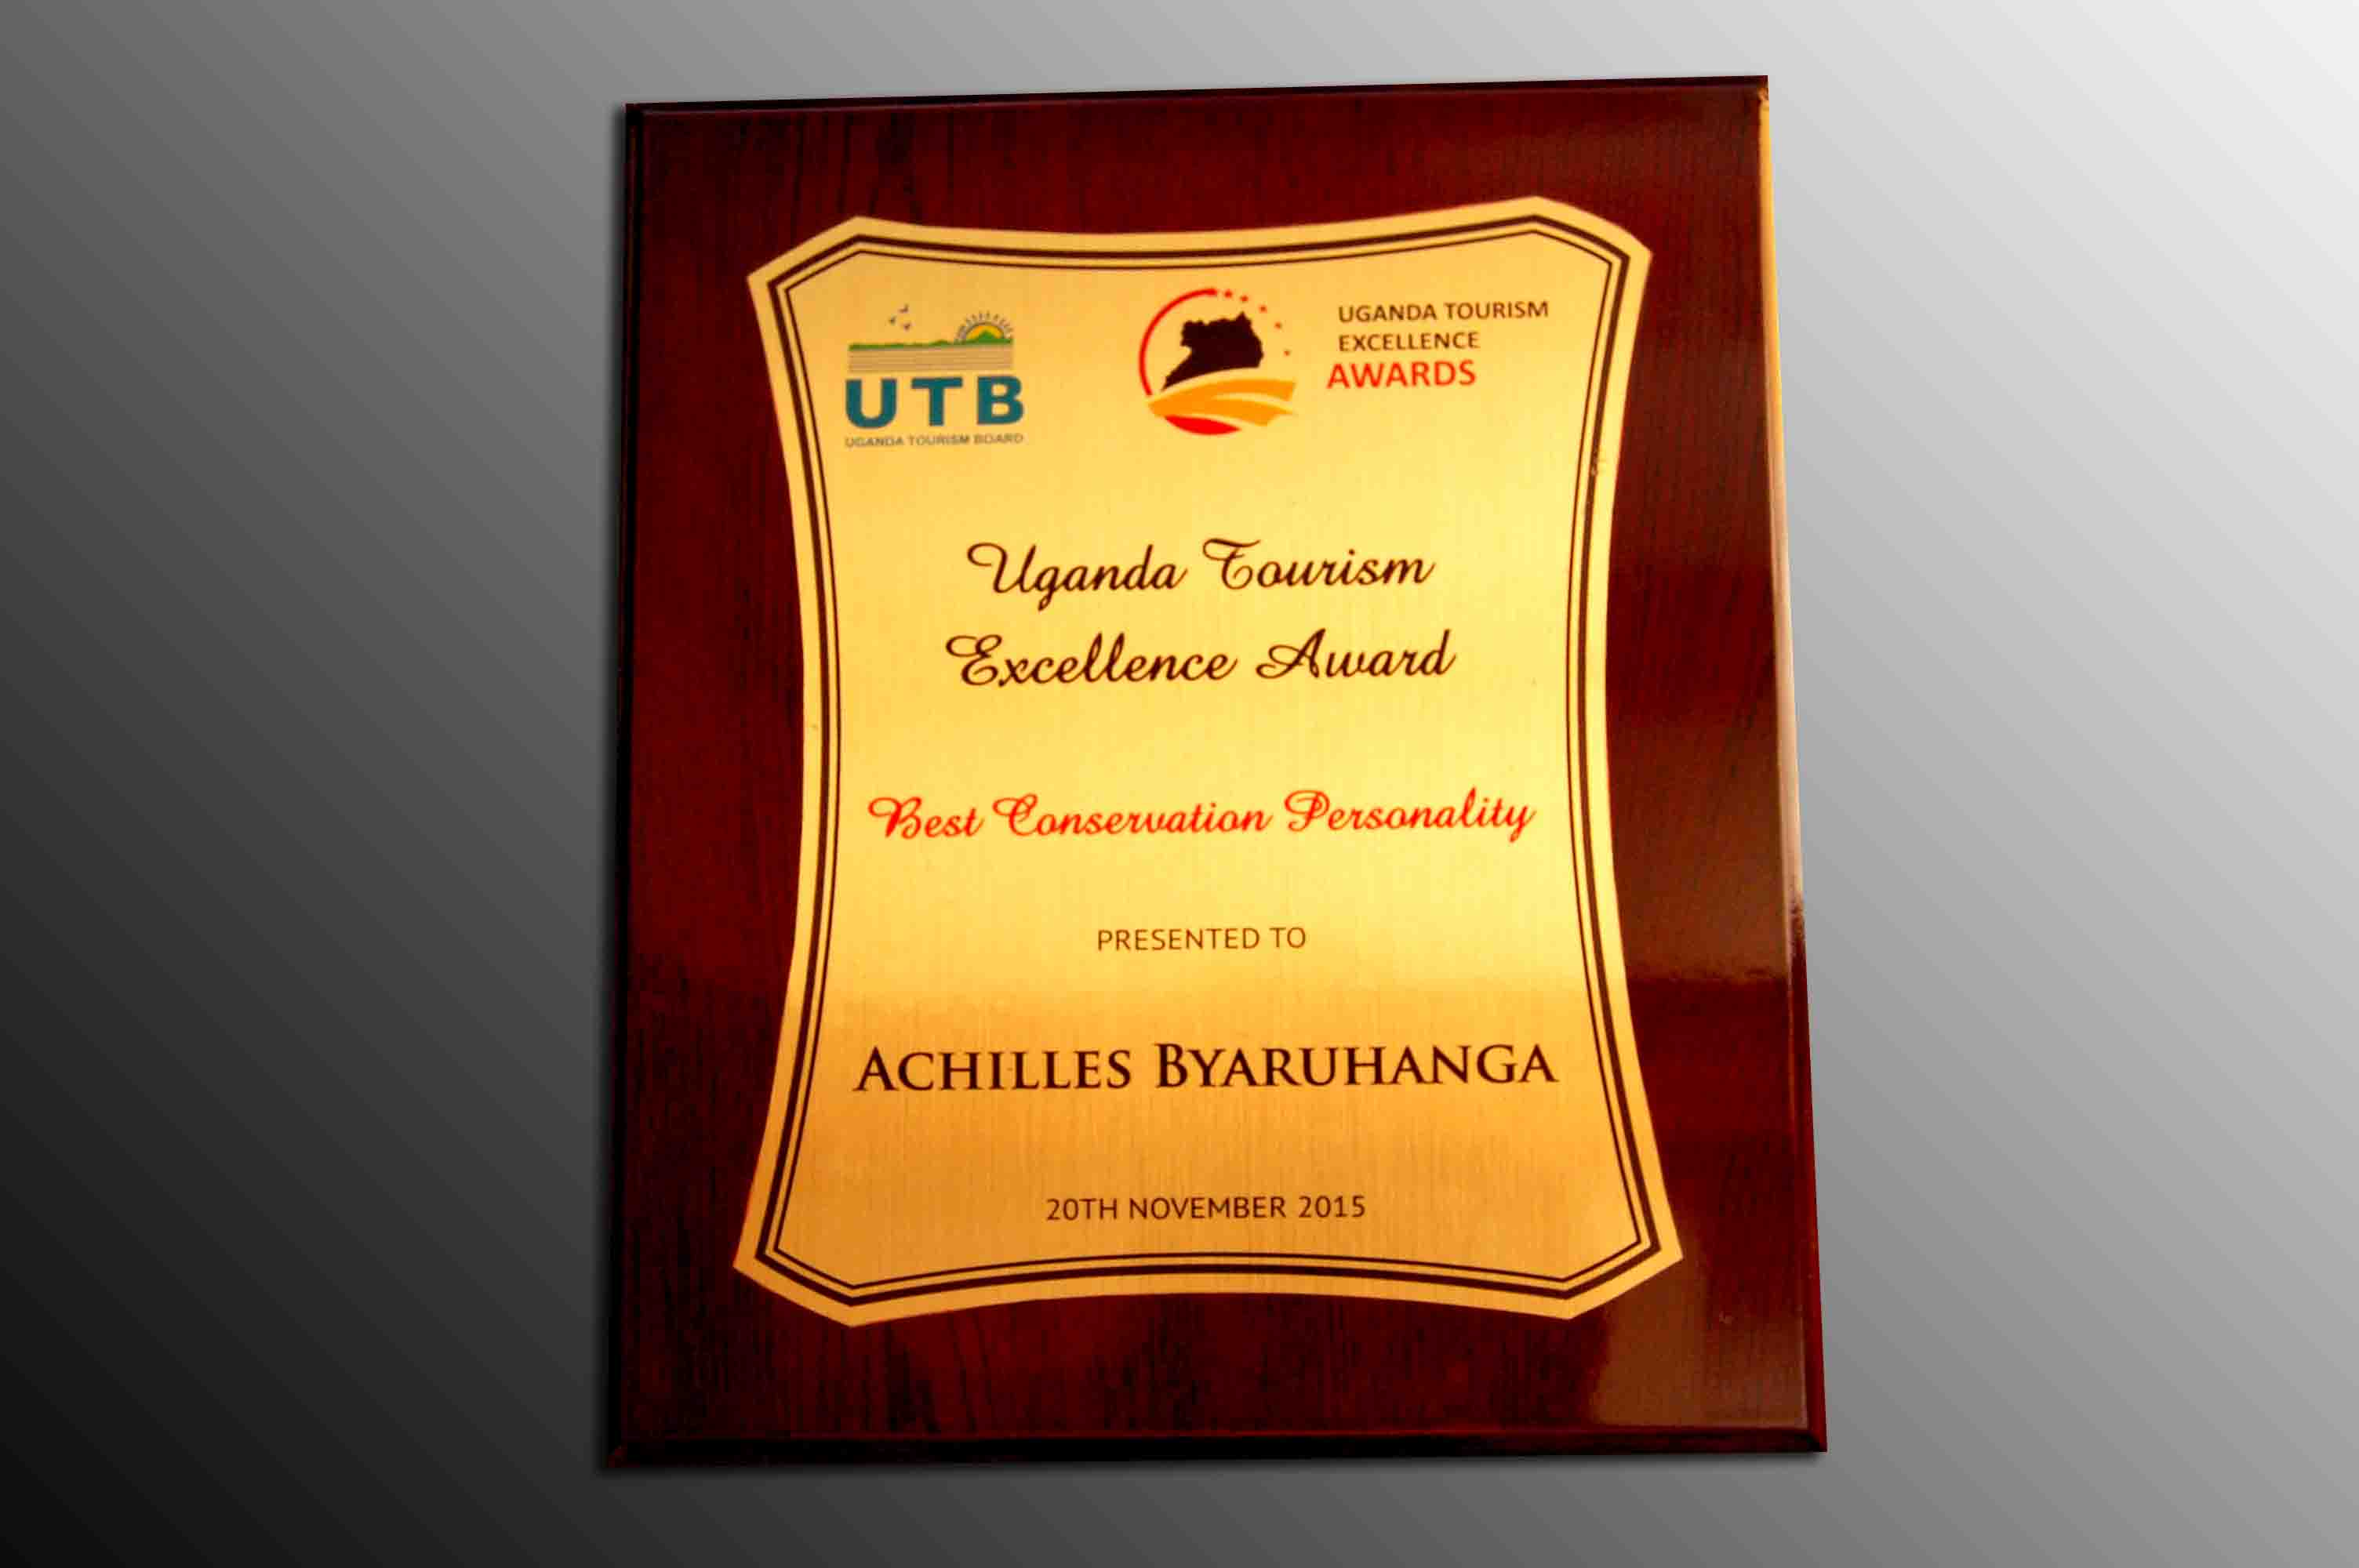 Excellence Award NatureUganda from UTB